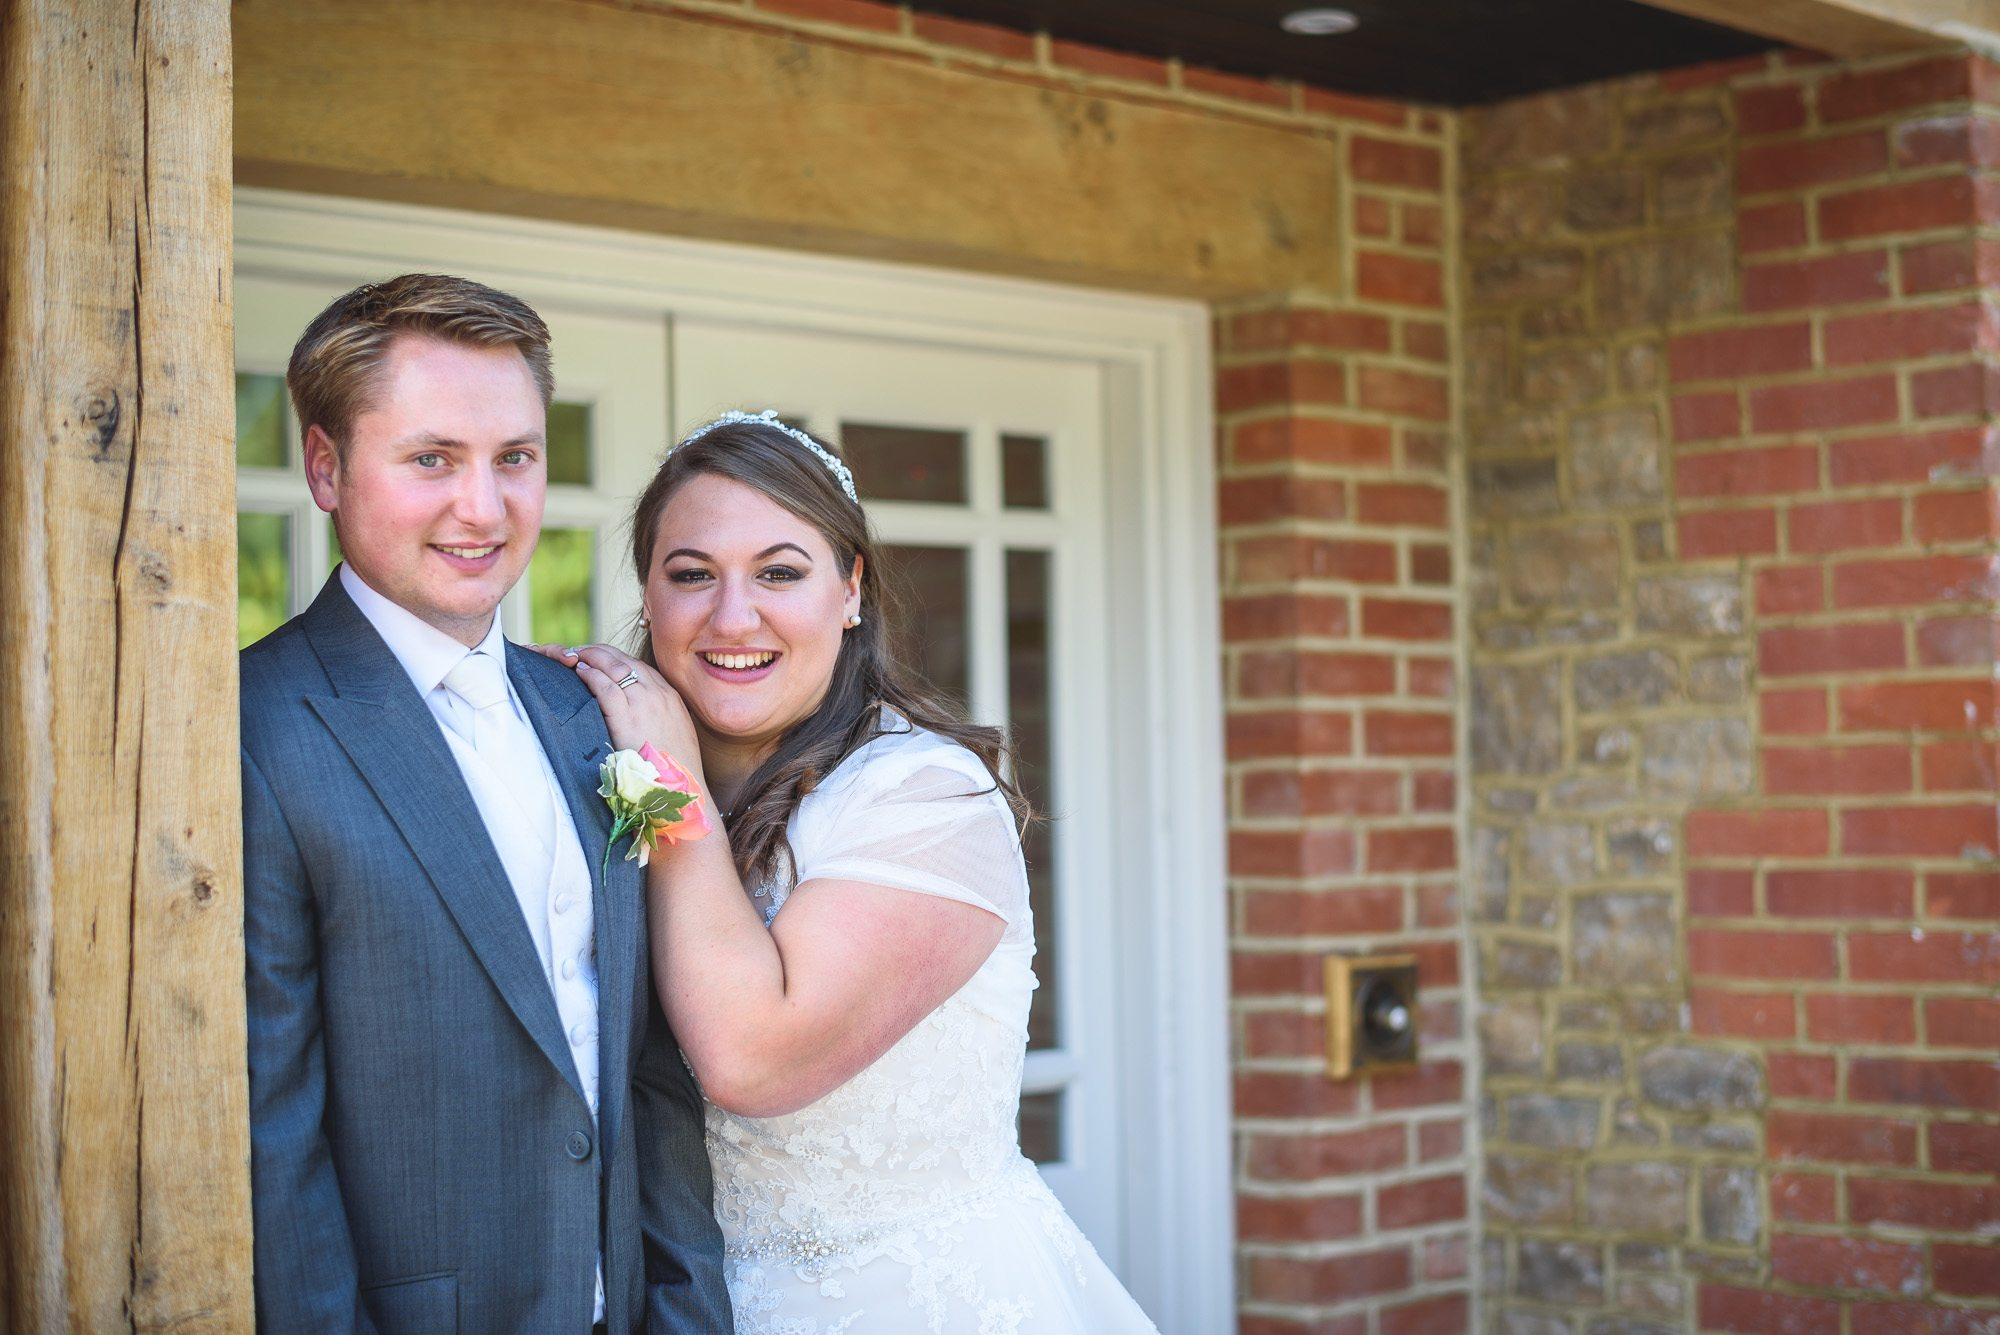 Lauren and Lee - Millbridge Court wedding photography (111 of 166)